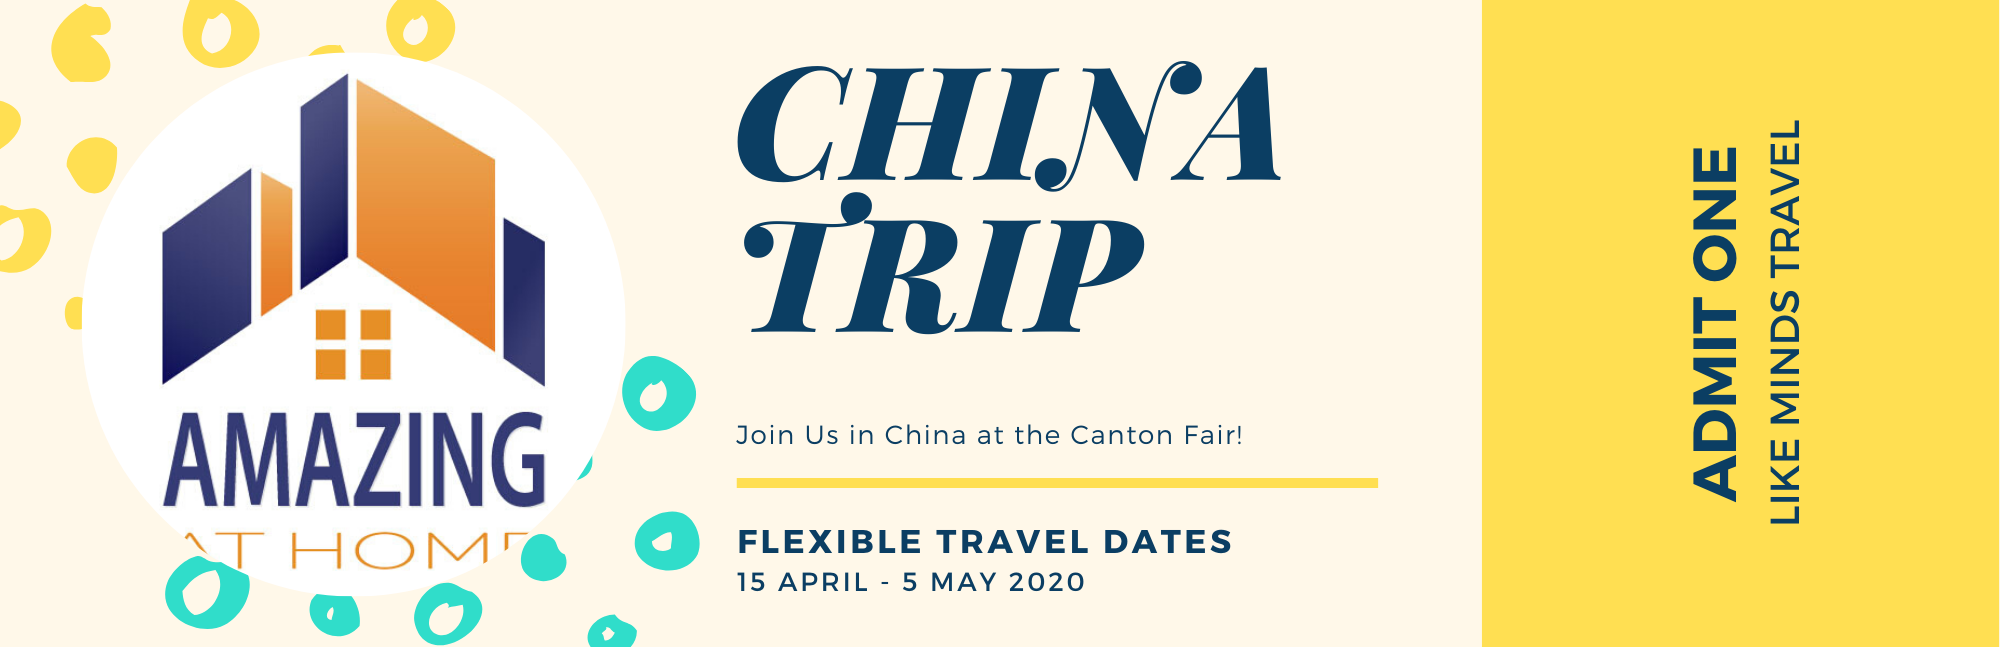 Amazing in China – Canton Fair April 2020 Sourcing Trip